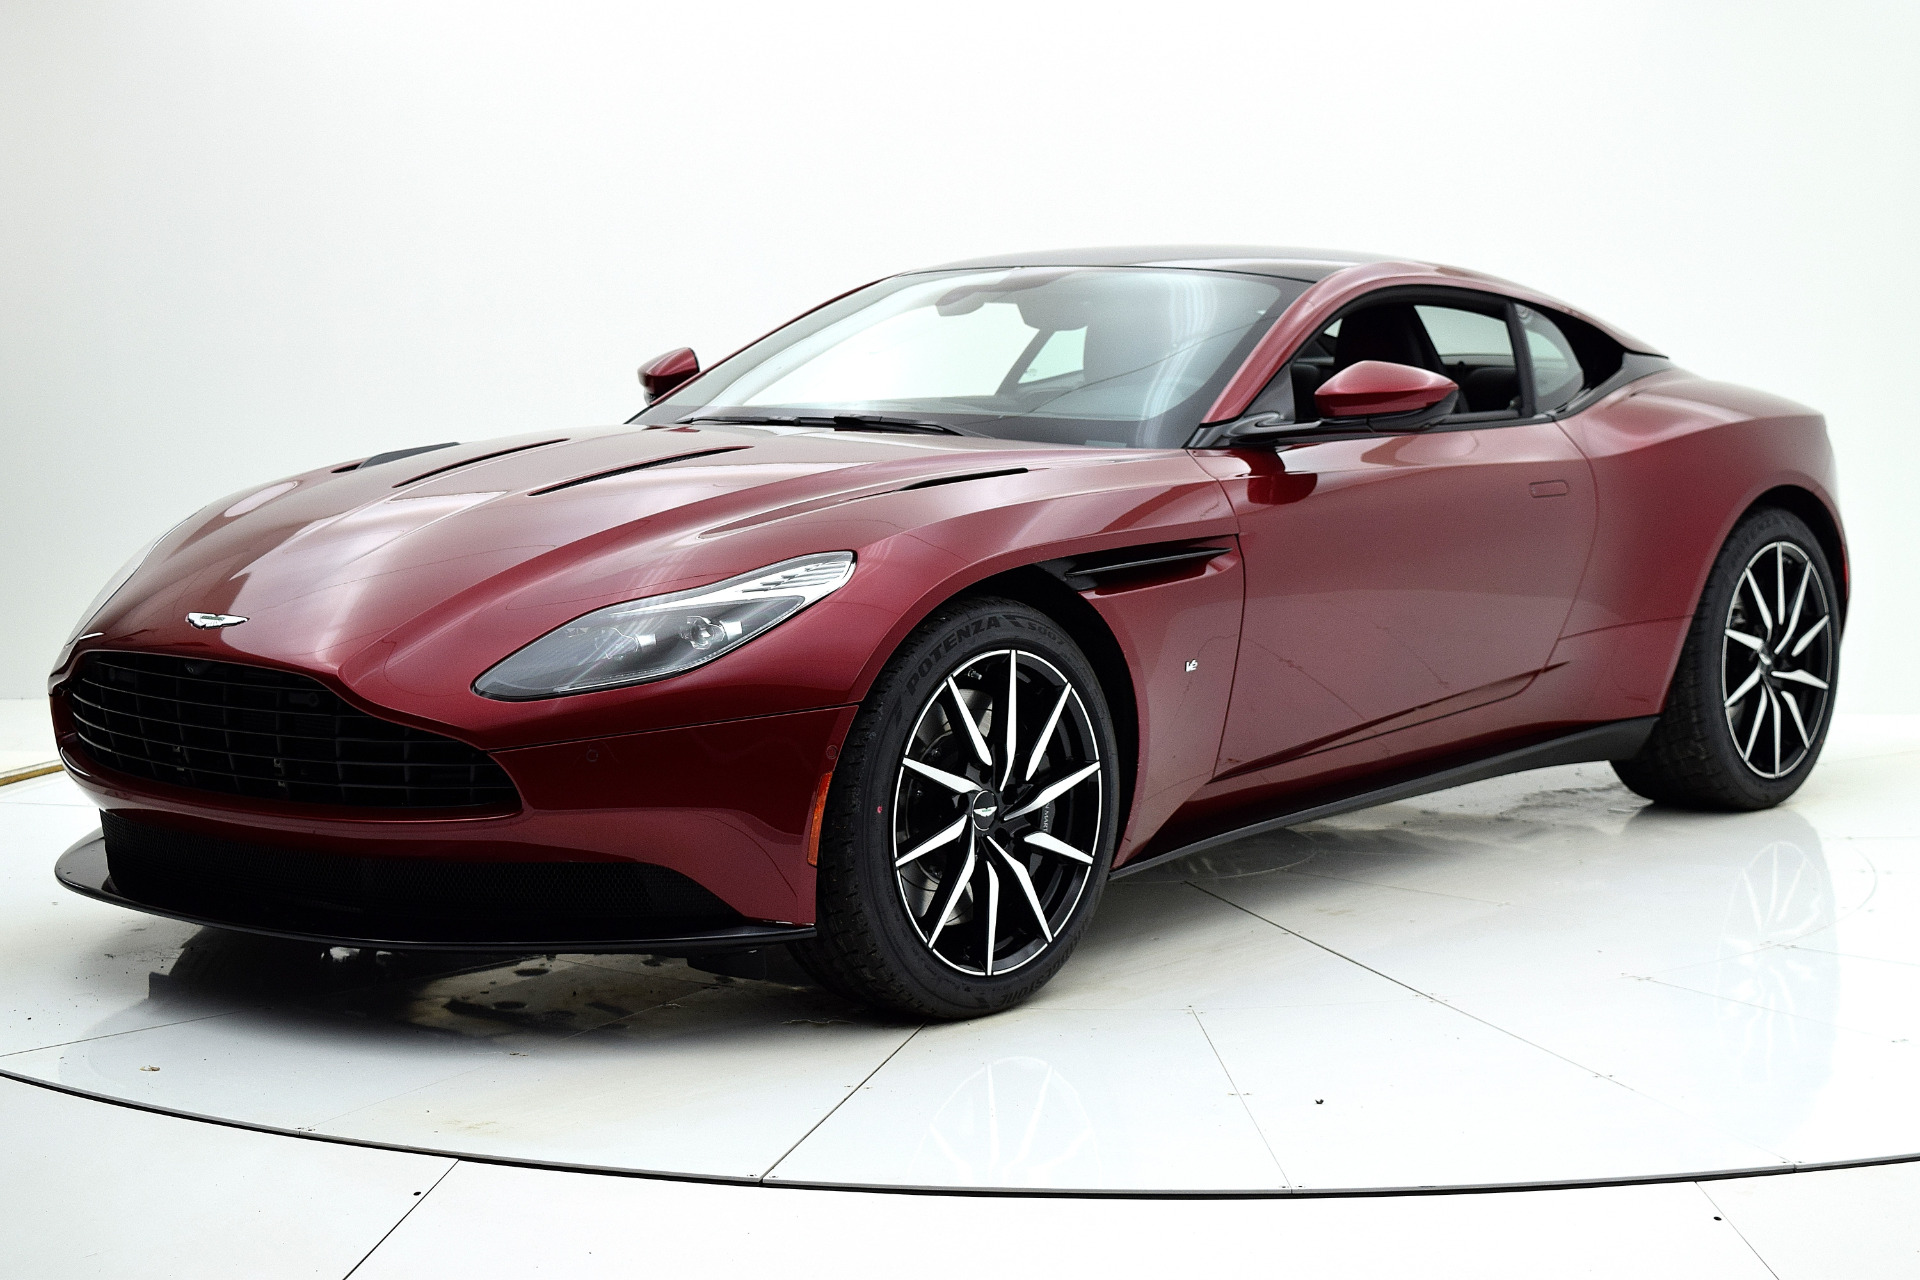 Aston Martin DB11 2018 For Sale $263954 Stock Number 18A118